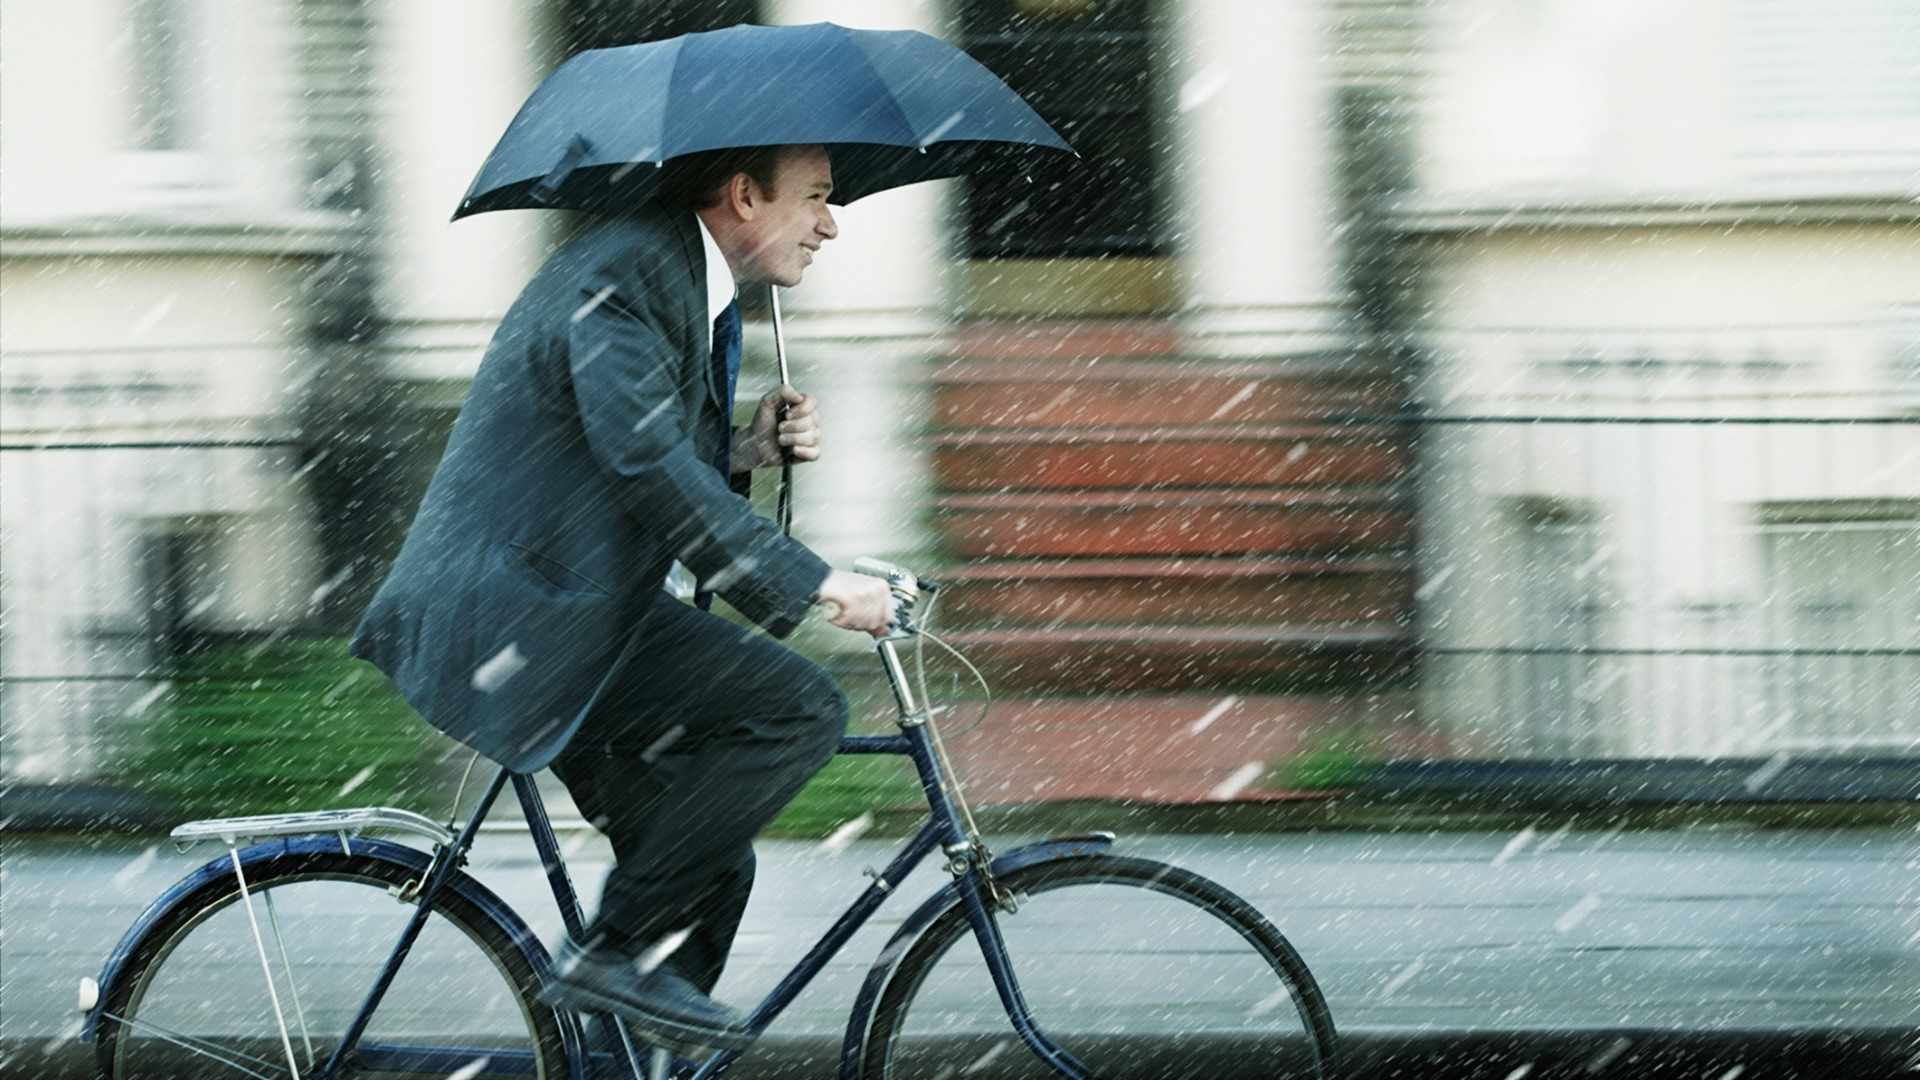 While there are many features that indicates this might be a British cyclist, realistically they are unlikely to be smiling in these conditions. Even though it gives them something to talk about to other cyclists/people at work.